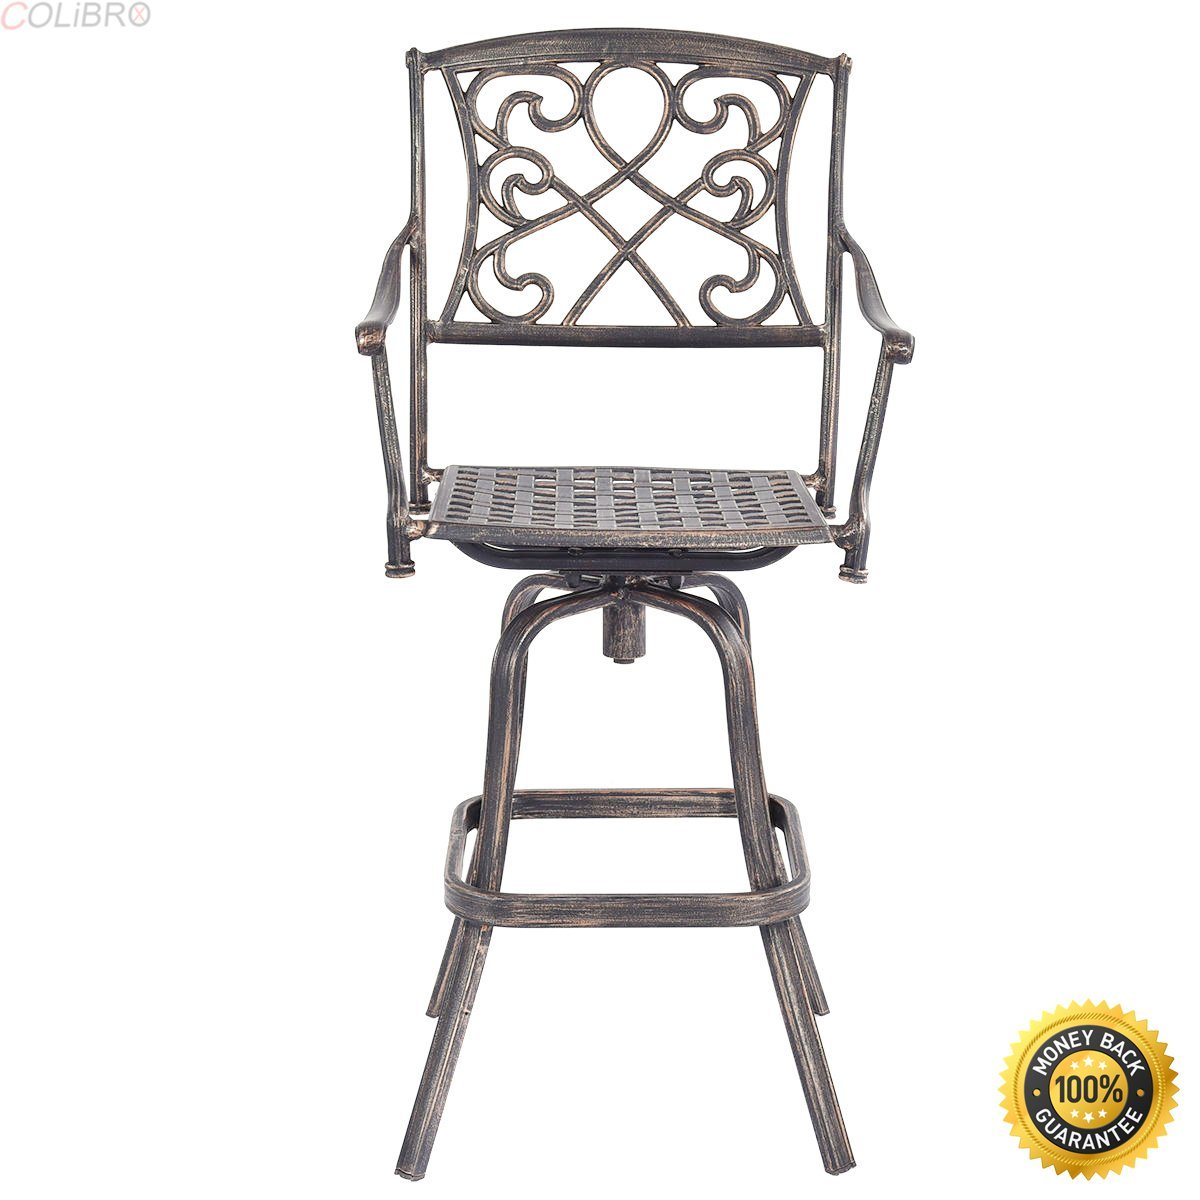 Kitchen Stools For Sale Buy Colibrox Cast Aluminum Swivel Bar Stool Patio Furniture